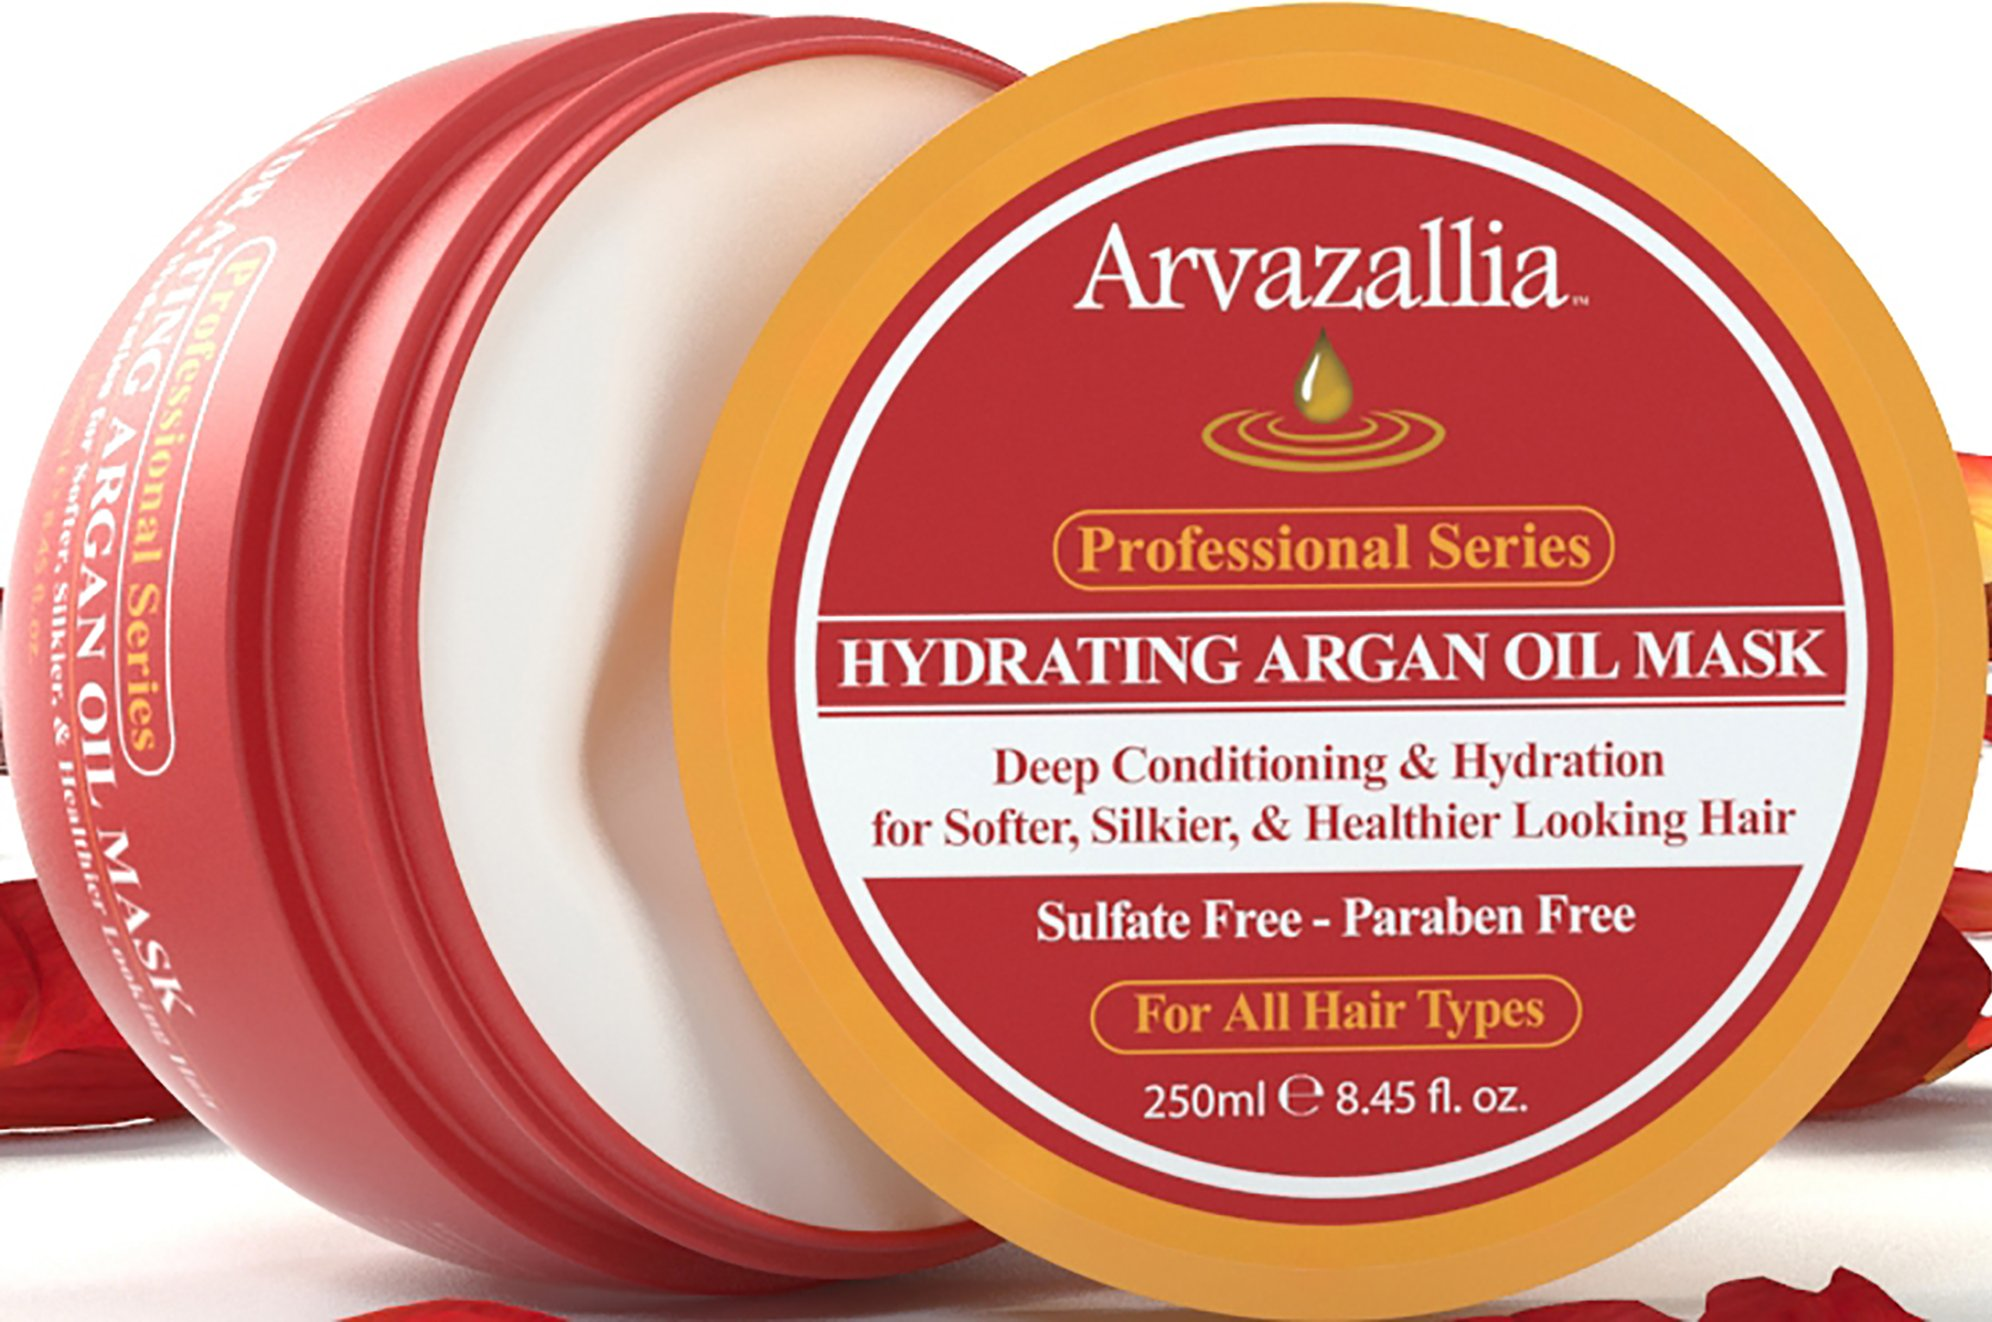 Hydrating Argan Oil Hair Mask and Deep Conditioner By Arvazallia for Dry or Damaged Hair - 8.45 Oz by Arvazallia (Image #2)